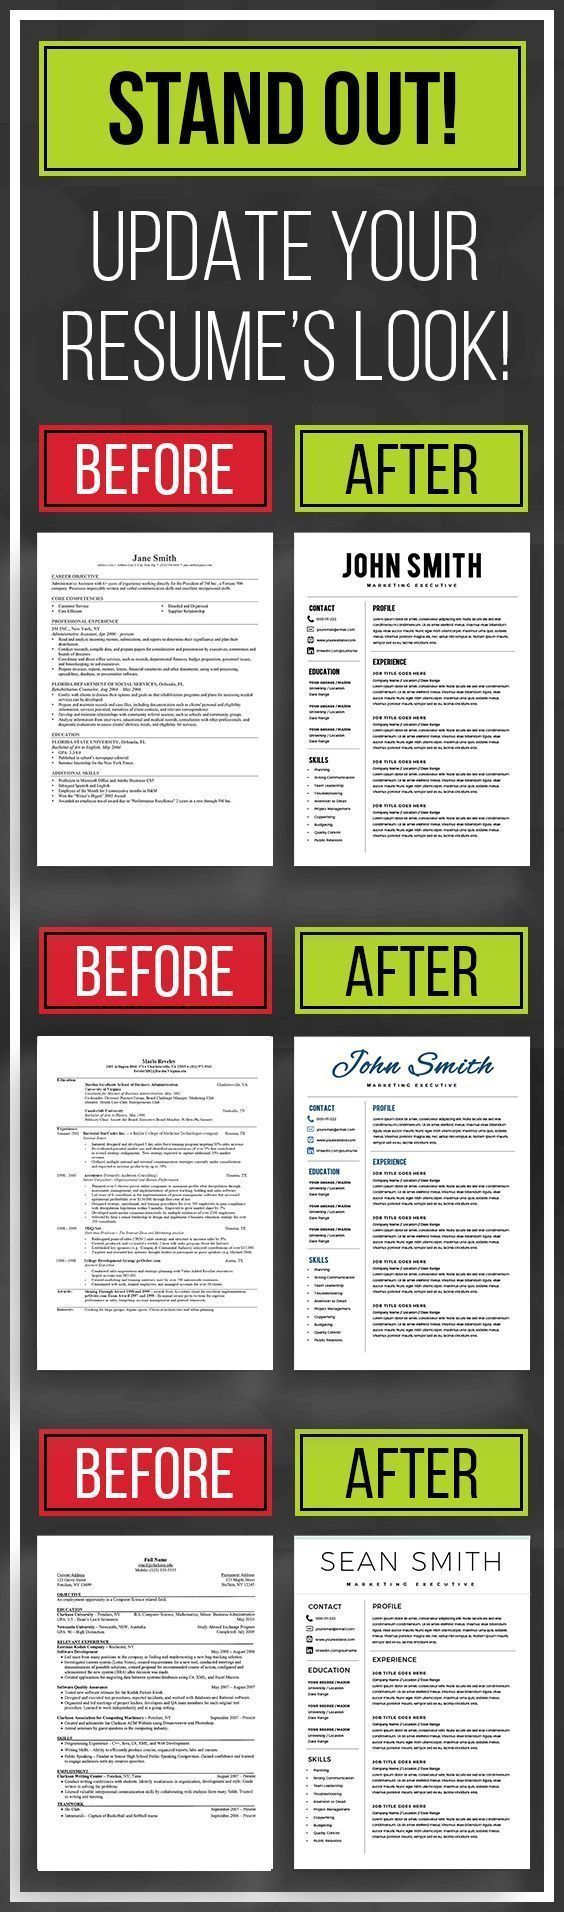 STAND OUT with resume template, resume templates word, cv template, resume templates for word, template for resume, simple resume template, resume templates, modern resume template, resumes templates, best resume templates, templates cv, creative res